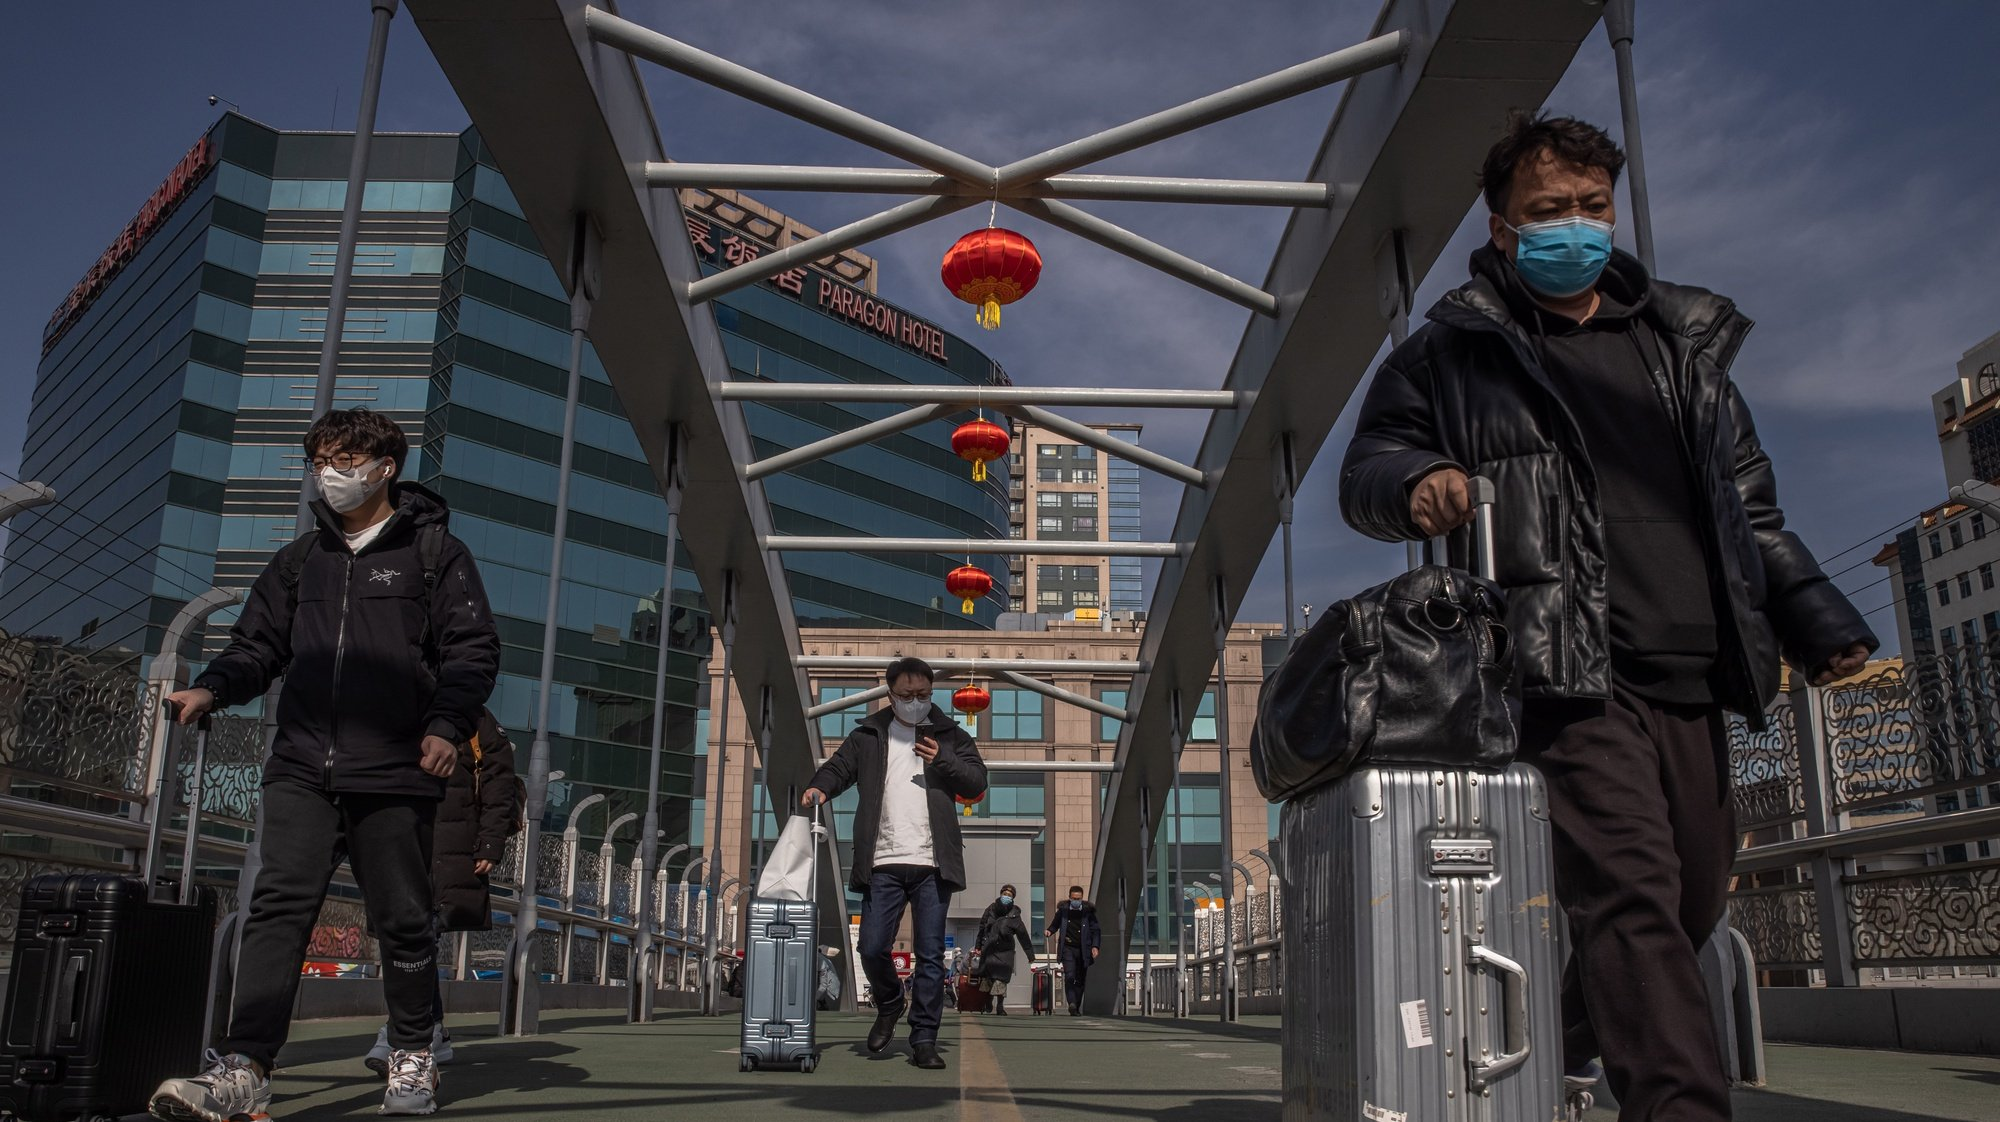 epaselect epa09000277 Chinese passengers carry their luggage and walk on a bridge towards the Beijing Railway Station before the upcoming Chinese Lunar New Year, in Beijing, China, 10 February 2021. The Lunar New Year, also known as Spring Festival, falls on 12 February 2021, marking the beginning of the Year of the Ox. Authorities in China urged people not to travel to their hometowns during Lunar New Year due to the COVID-19 outbreaks in the country.  EPA/ROMAN PILIPEY